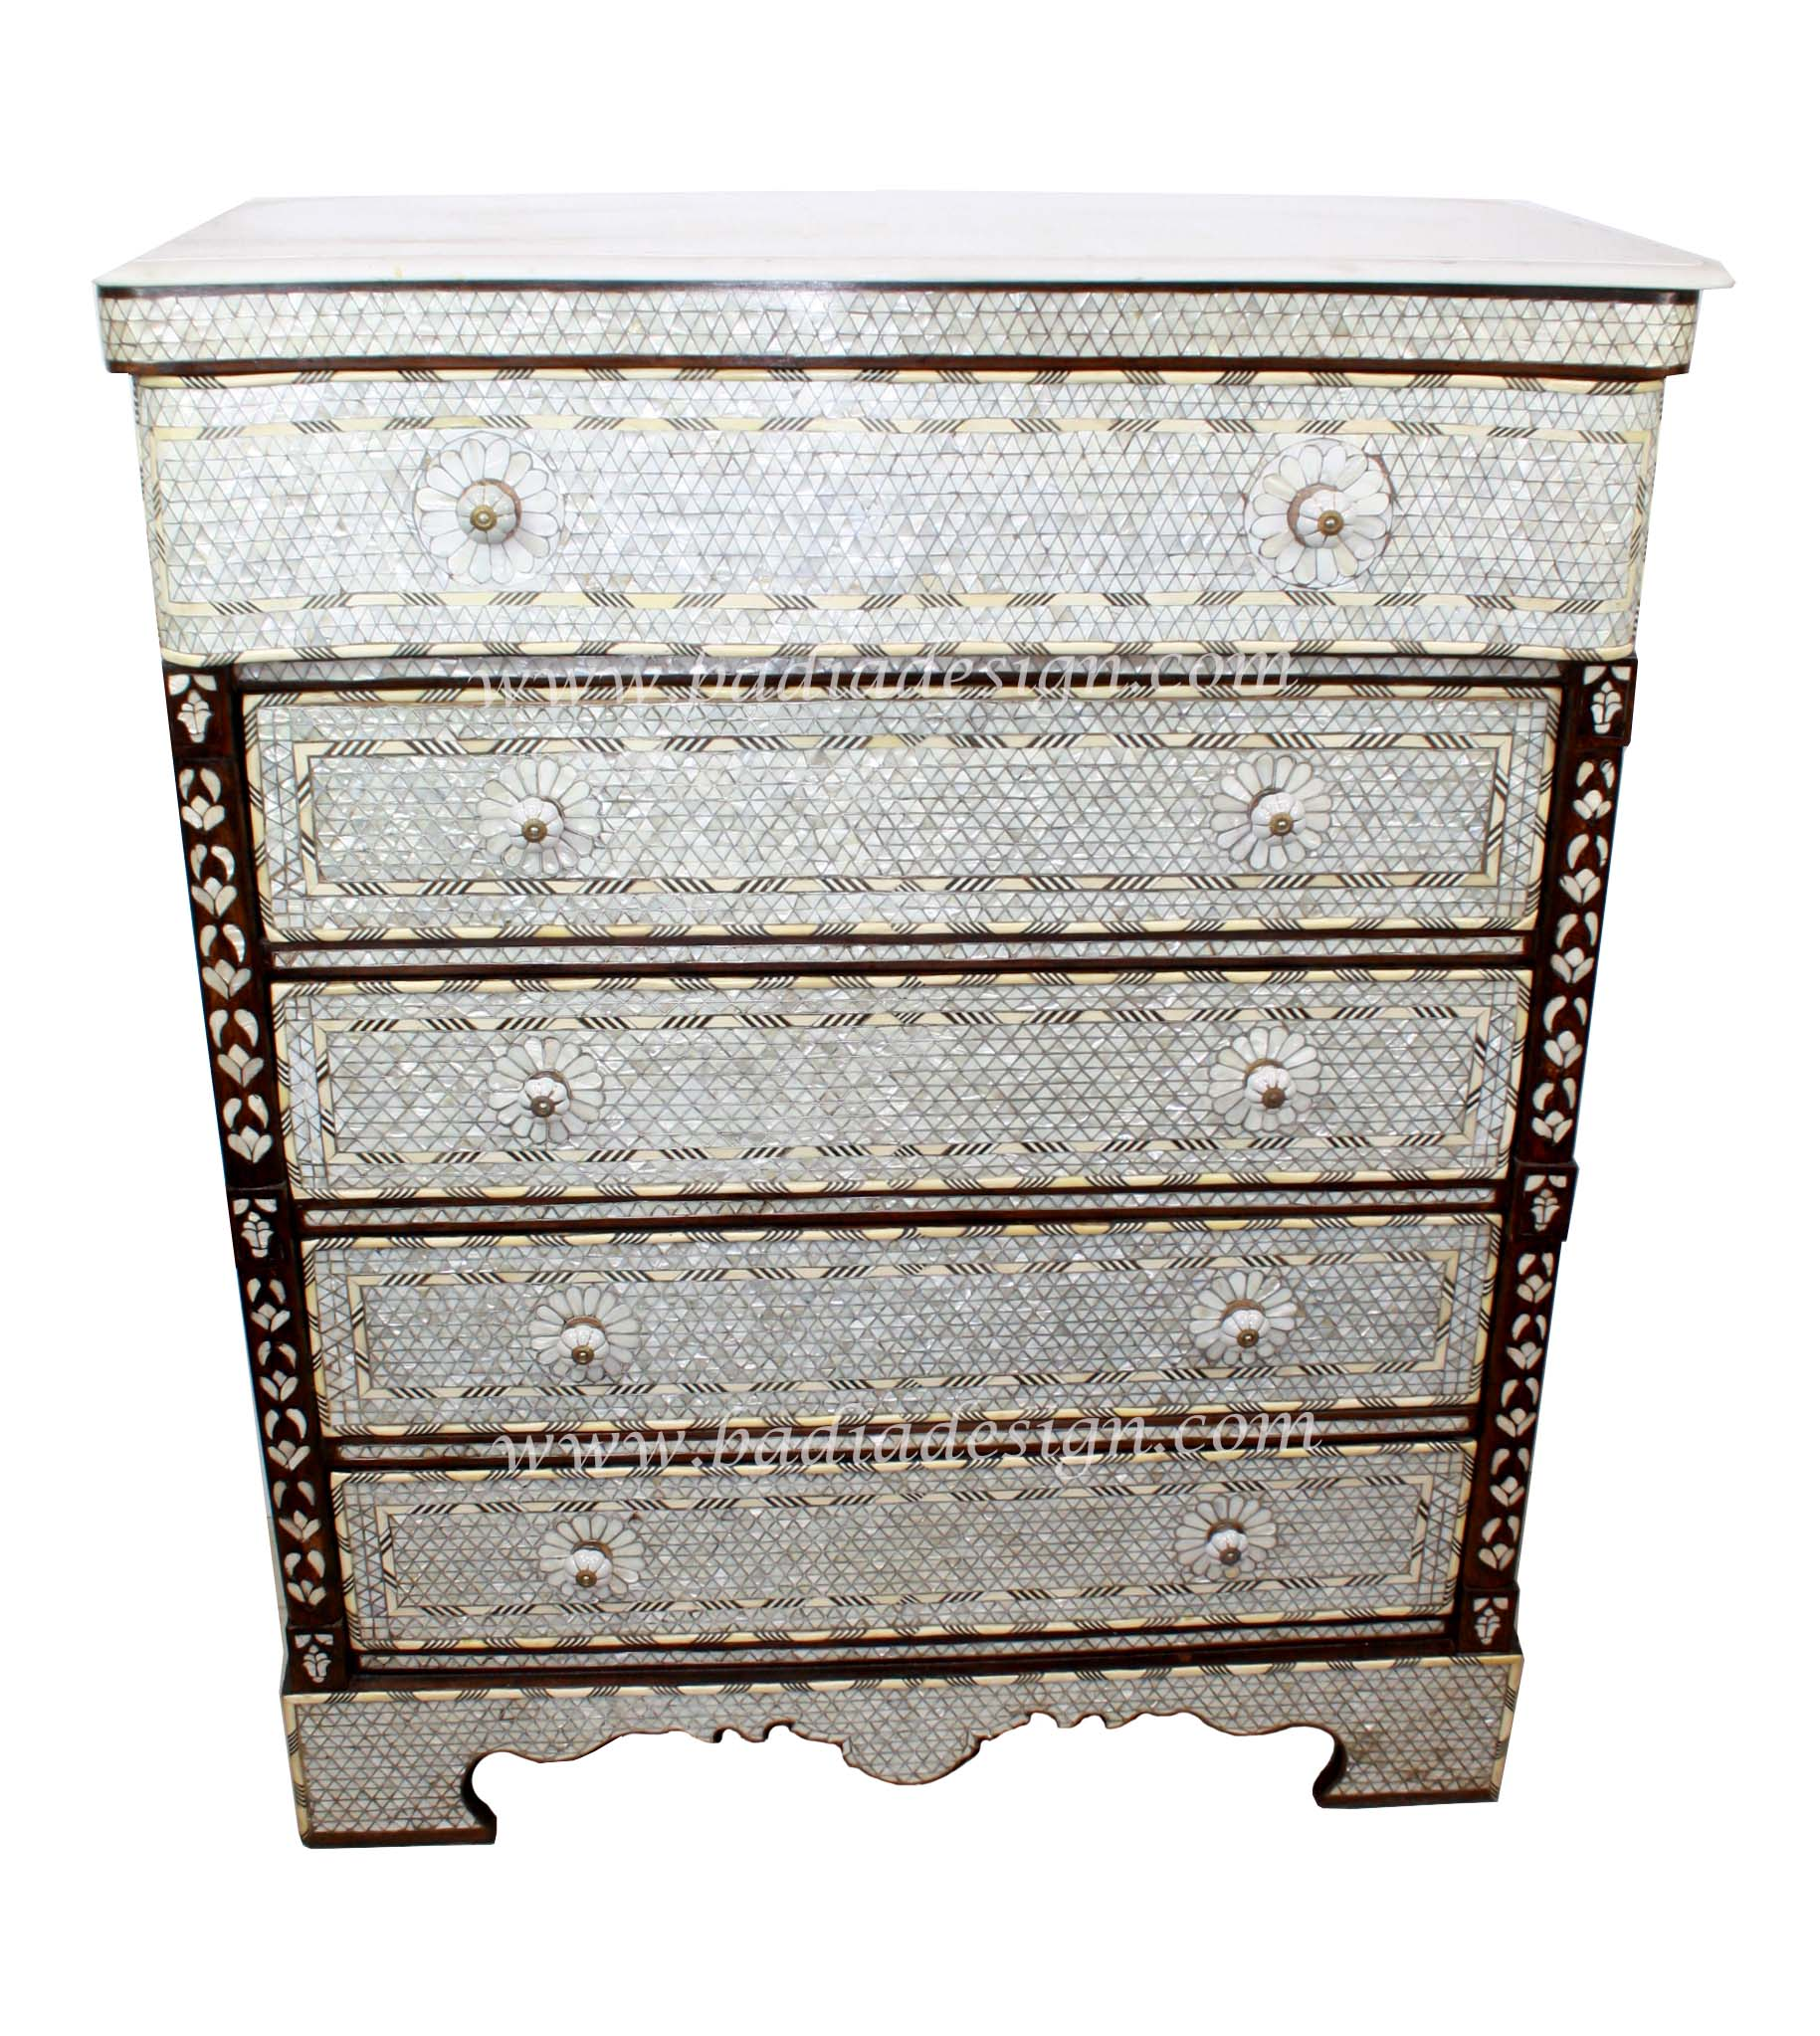 mother-of-pearl-dresser-mop-dr054-1.jpg